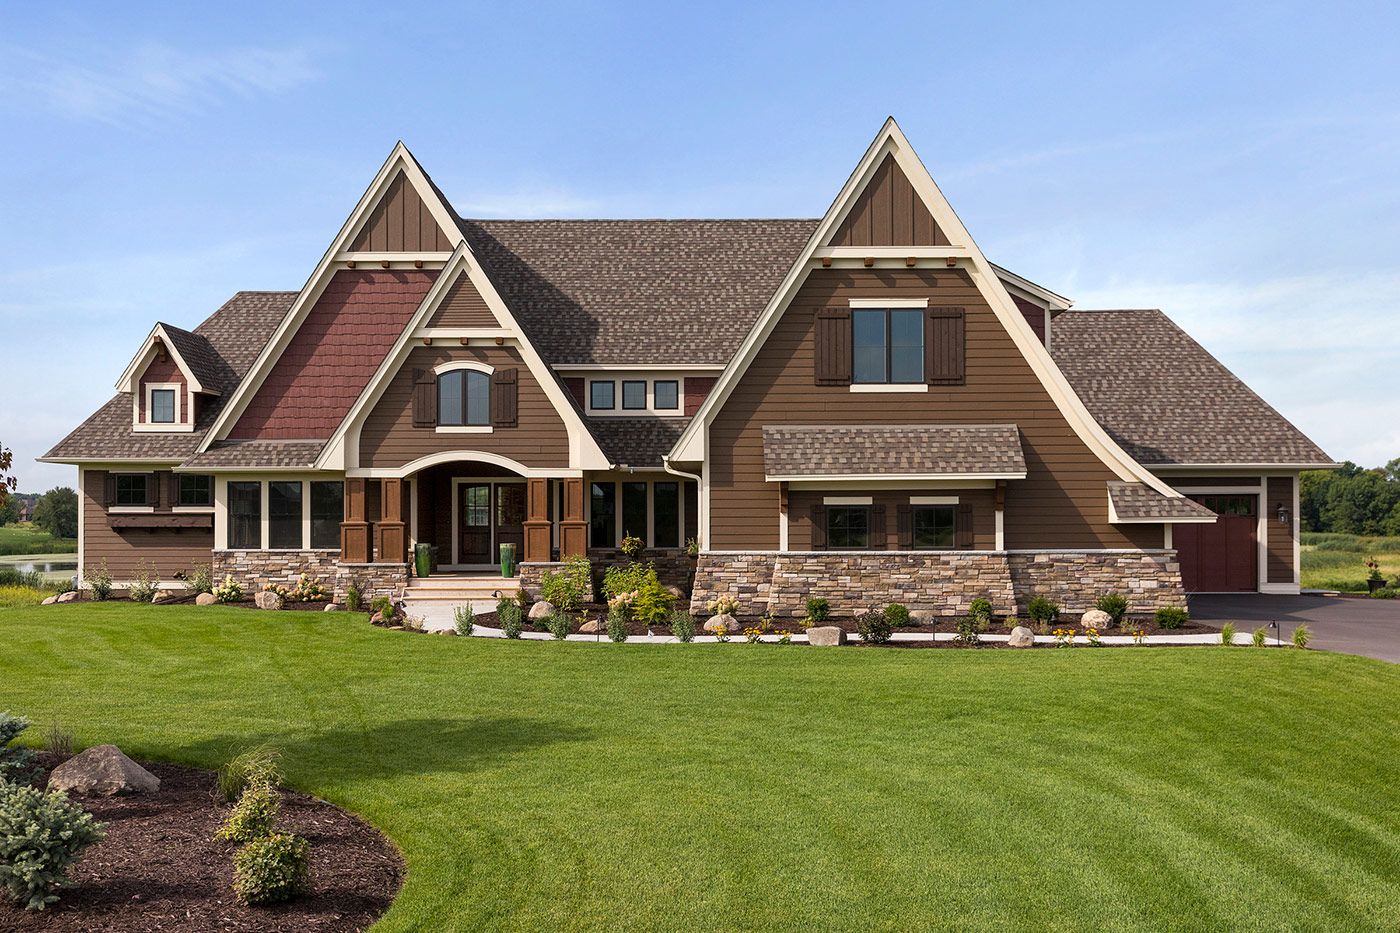 Custom Home Exteriors Custom Home Builders Amp New Home Communities In Lakeville And Minneapolis Mn